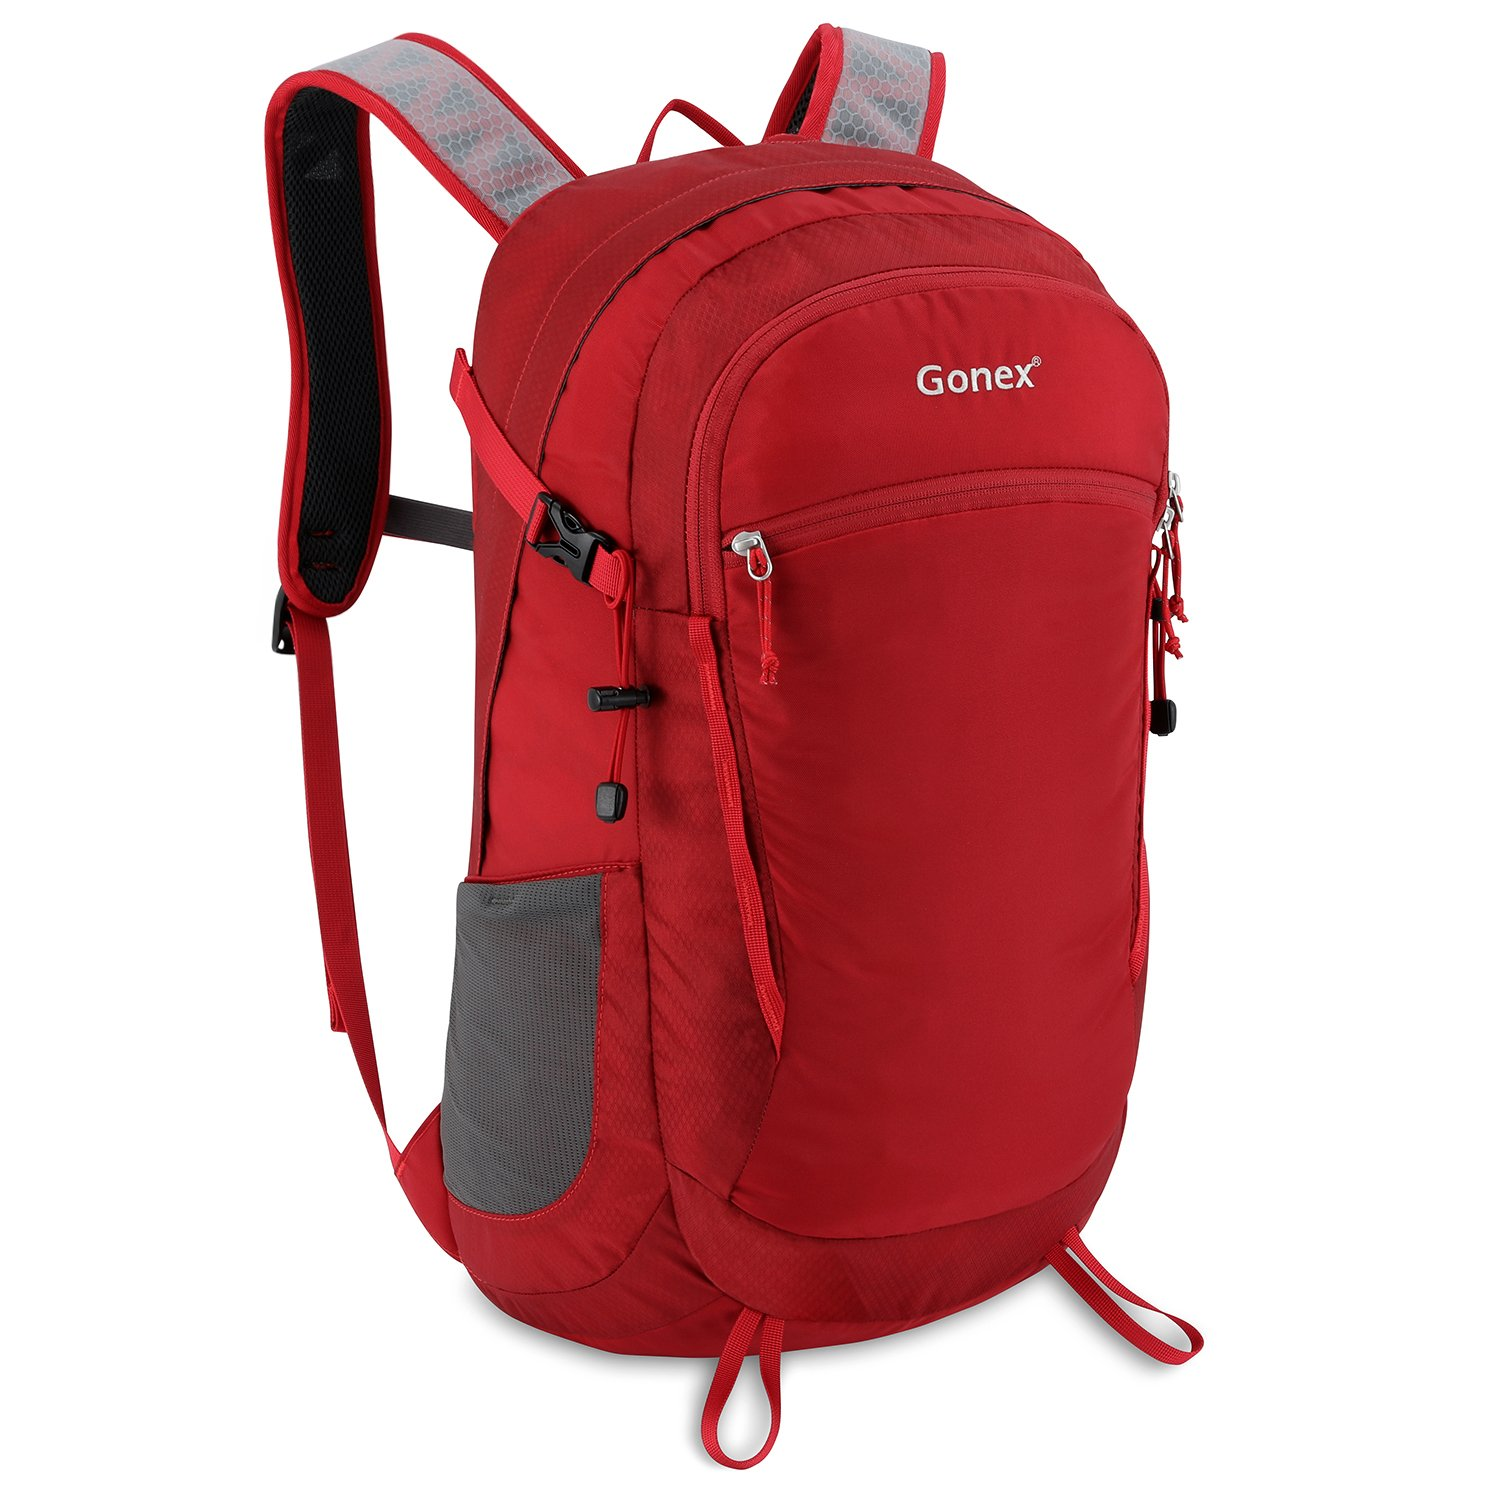 Gonex 35L Travel Hiking Backpack Water Repellent for Outdoor Trekking Camping Climbing Mountaineering(Red)